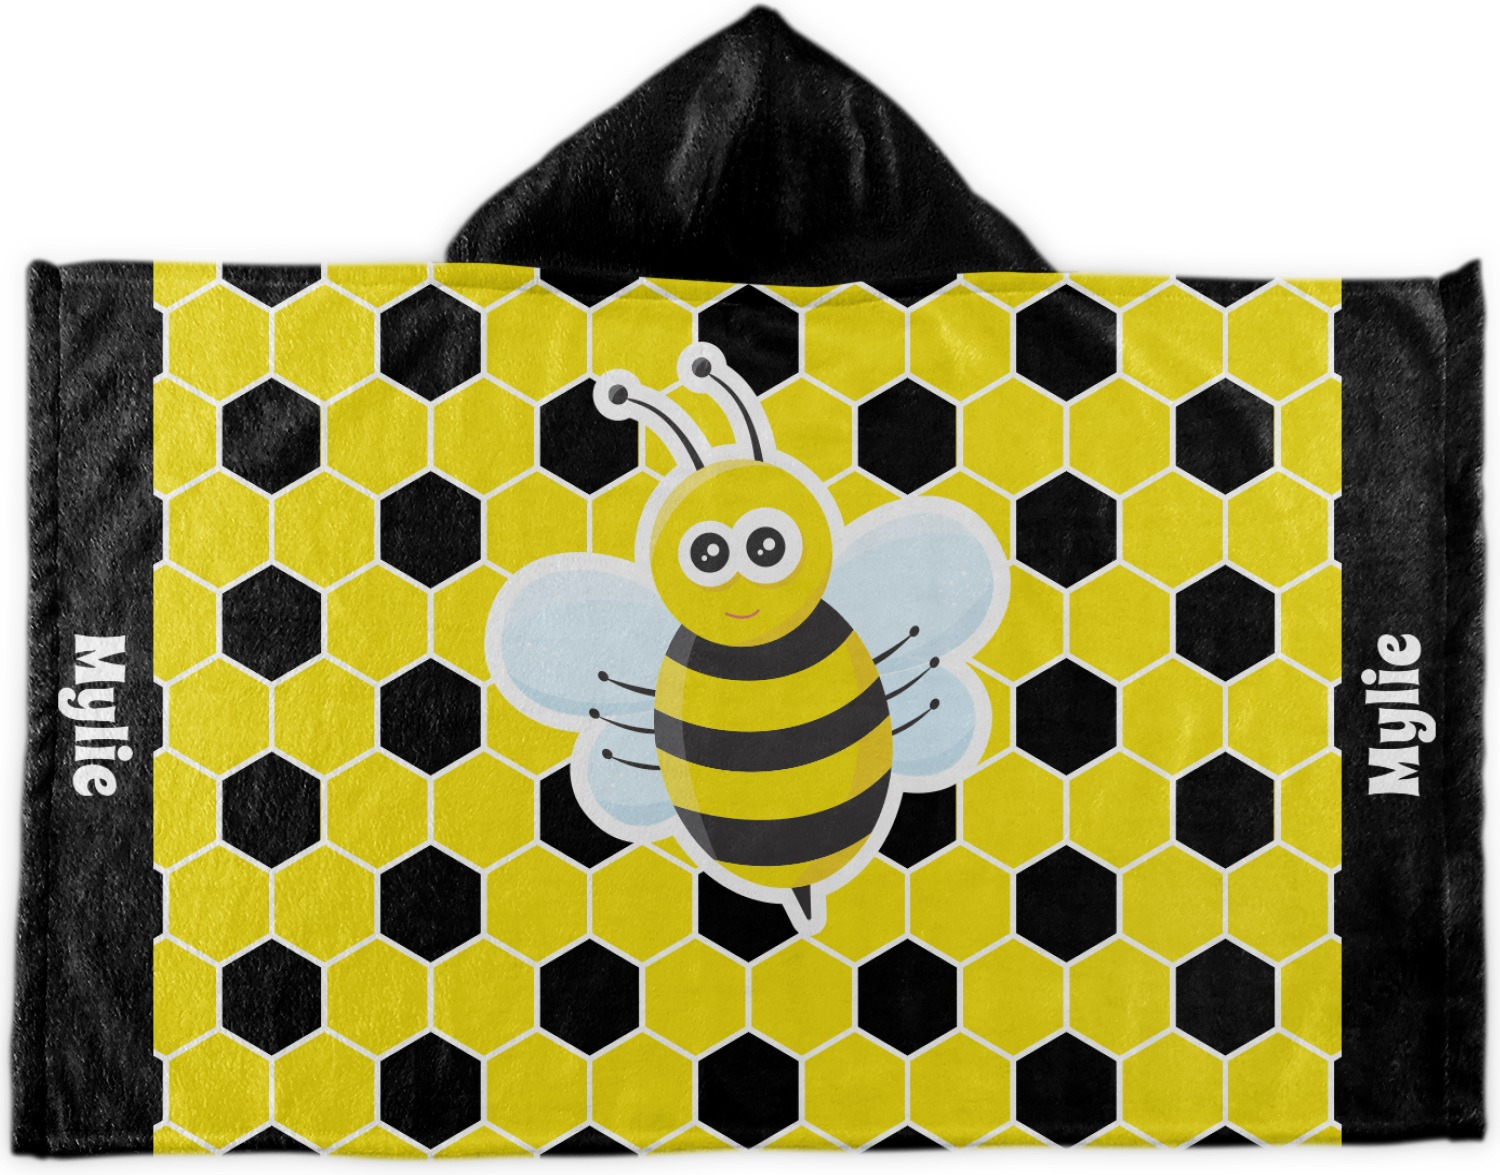 Honeycomb Kids Hooded Towel Personalized Youcustomizeit